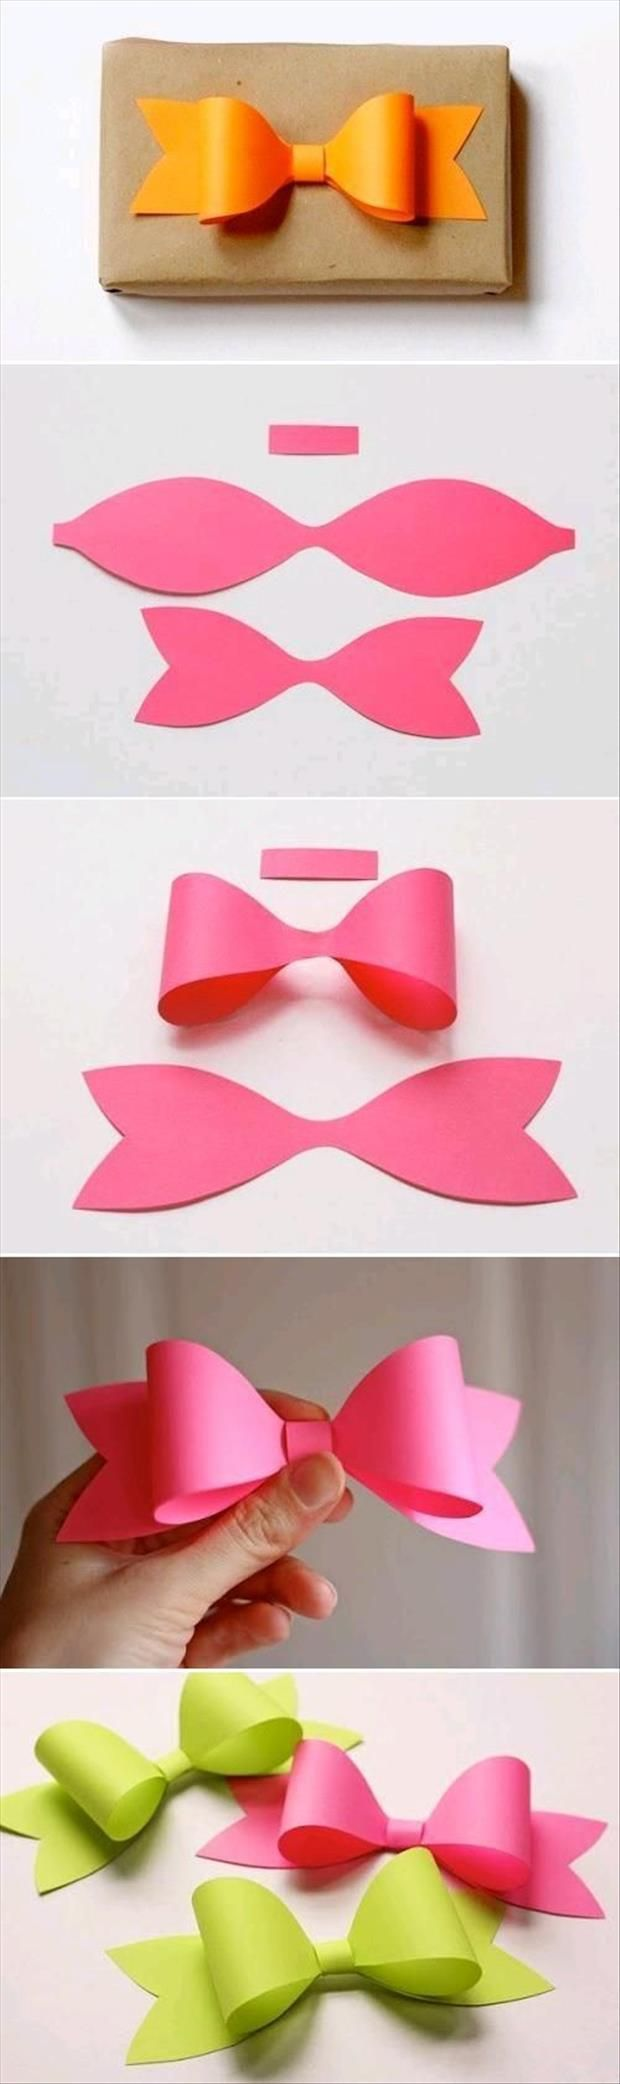 Simple Ideas That Are Borderline Crafty – 39 Pics